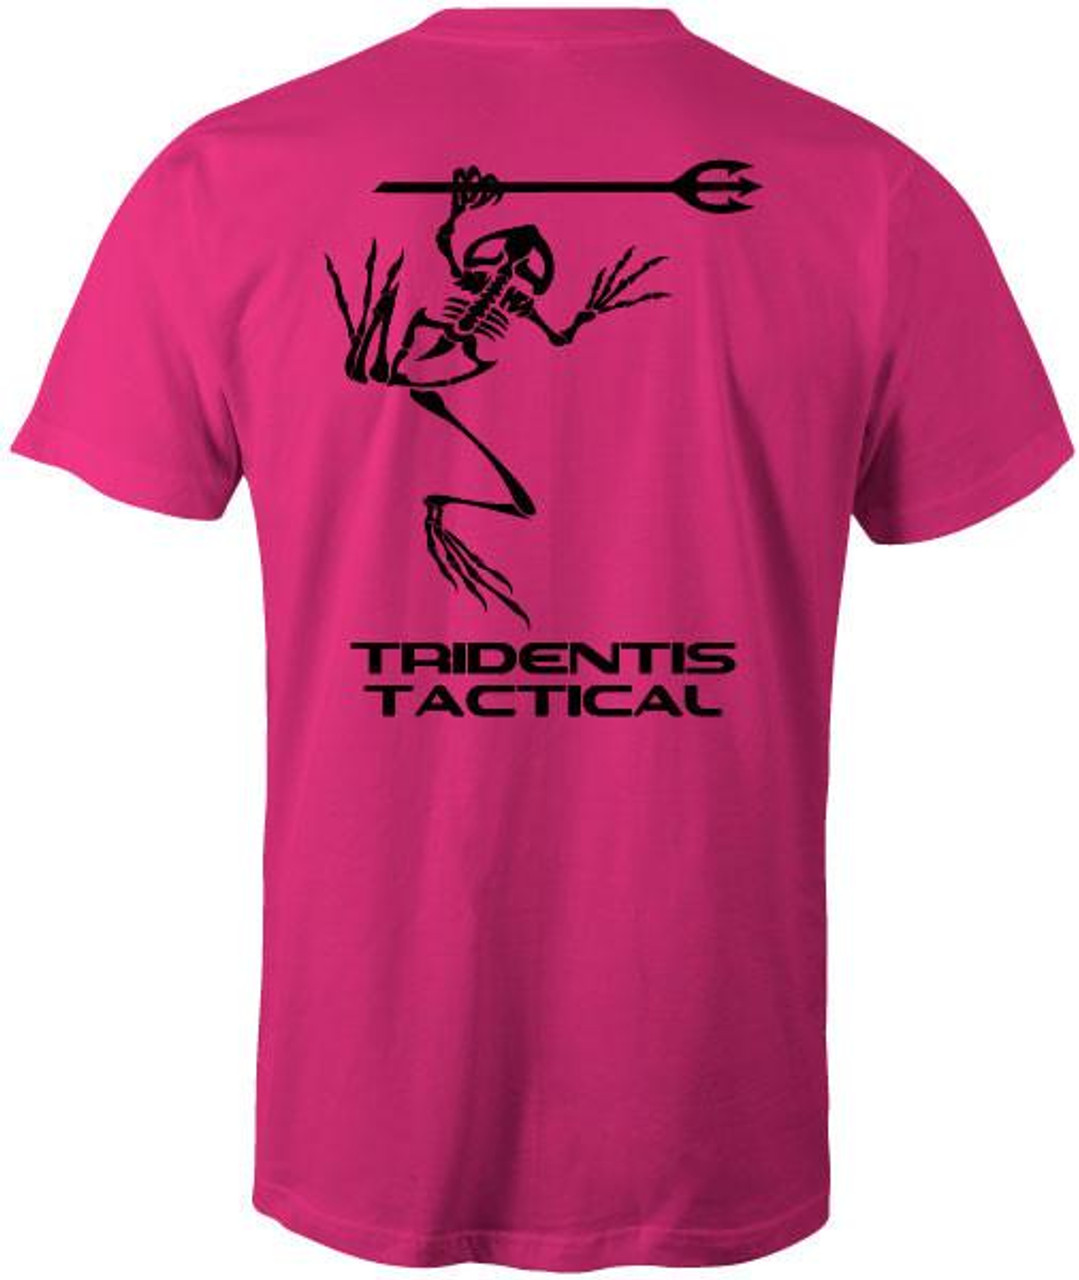 Tridentis Tactical Heliconia Pink T-Shirt Black Logo and Lettering